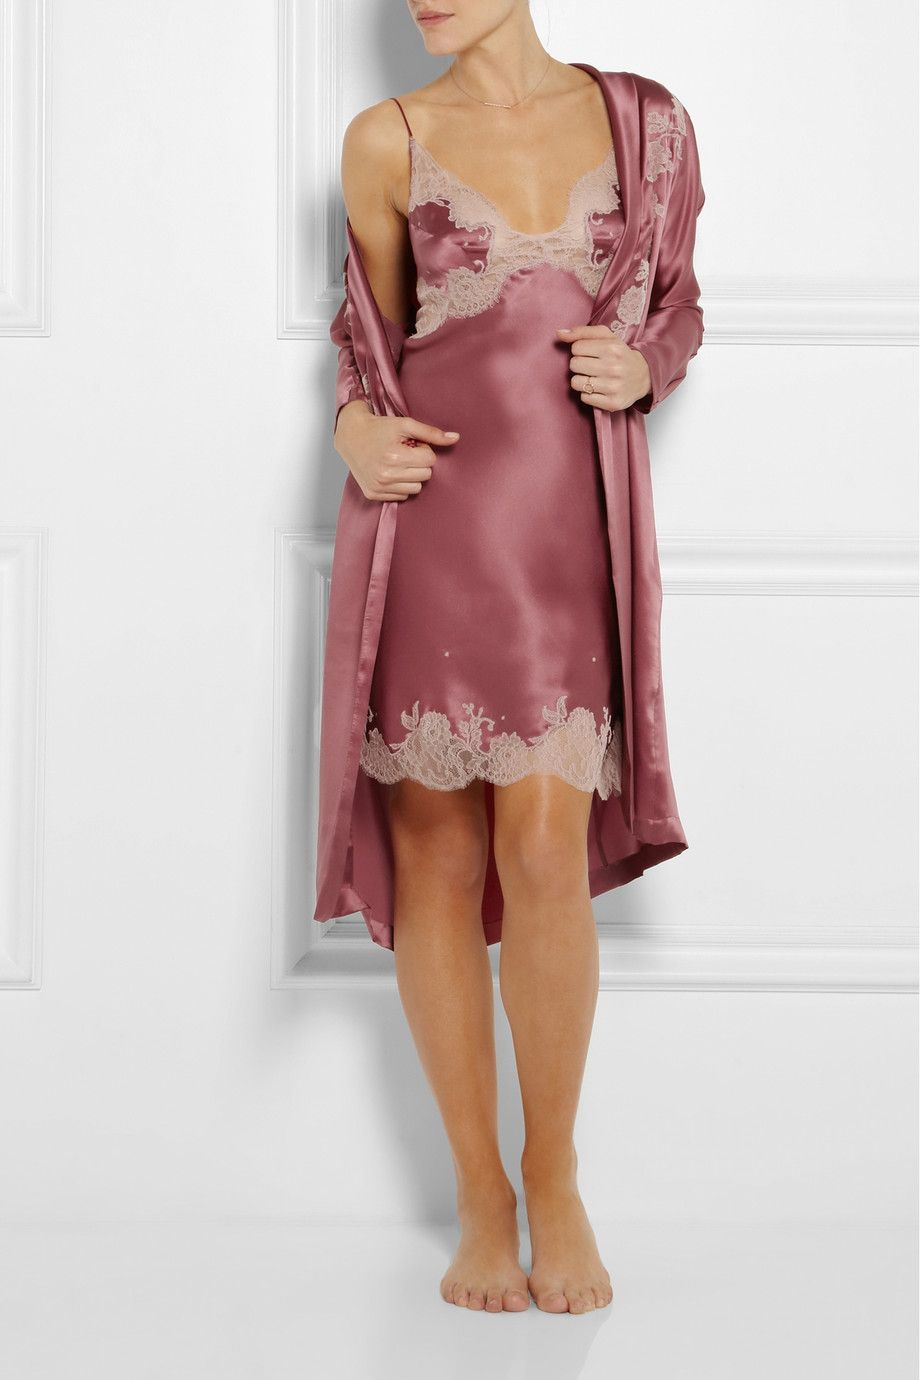 Lace dress nightwear  carine gilson lacetrimmed silksatin mousseliné chemise and robe